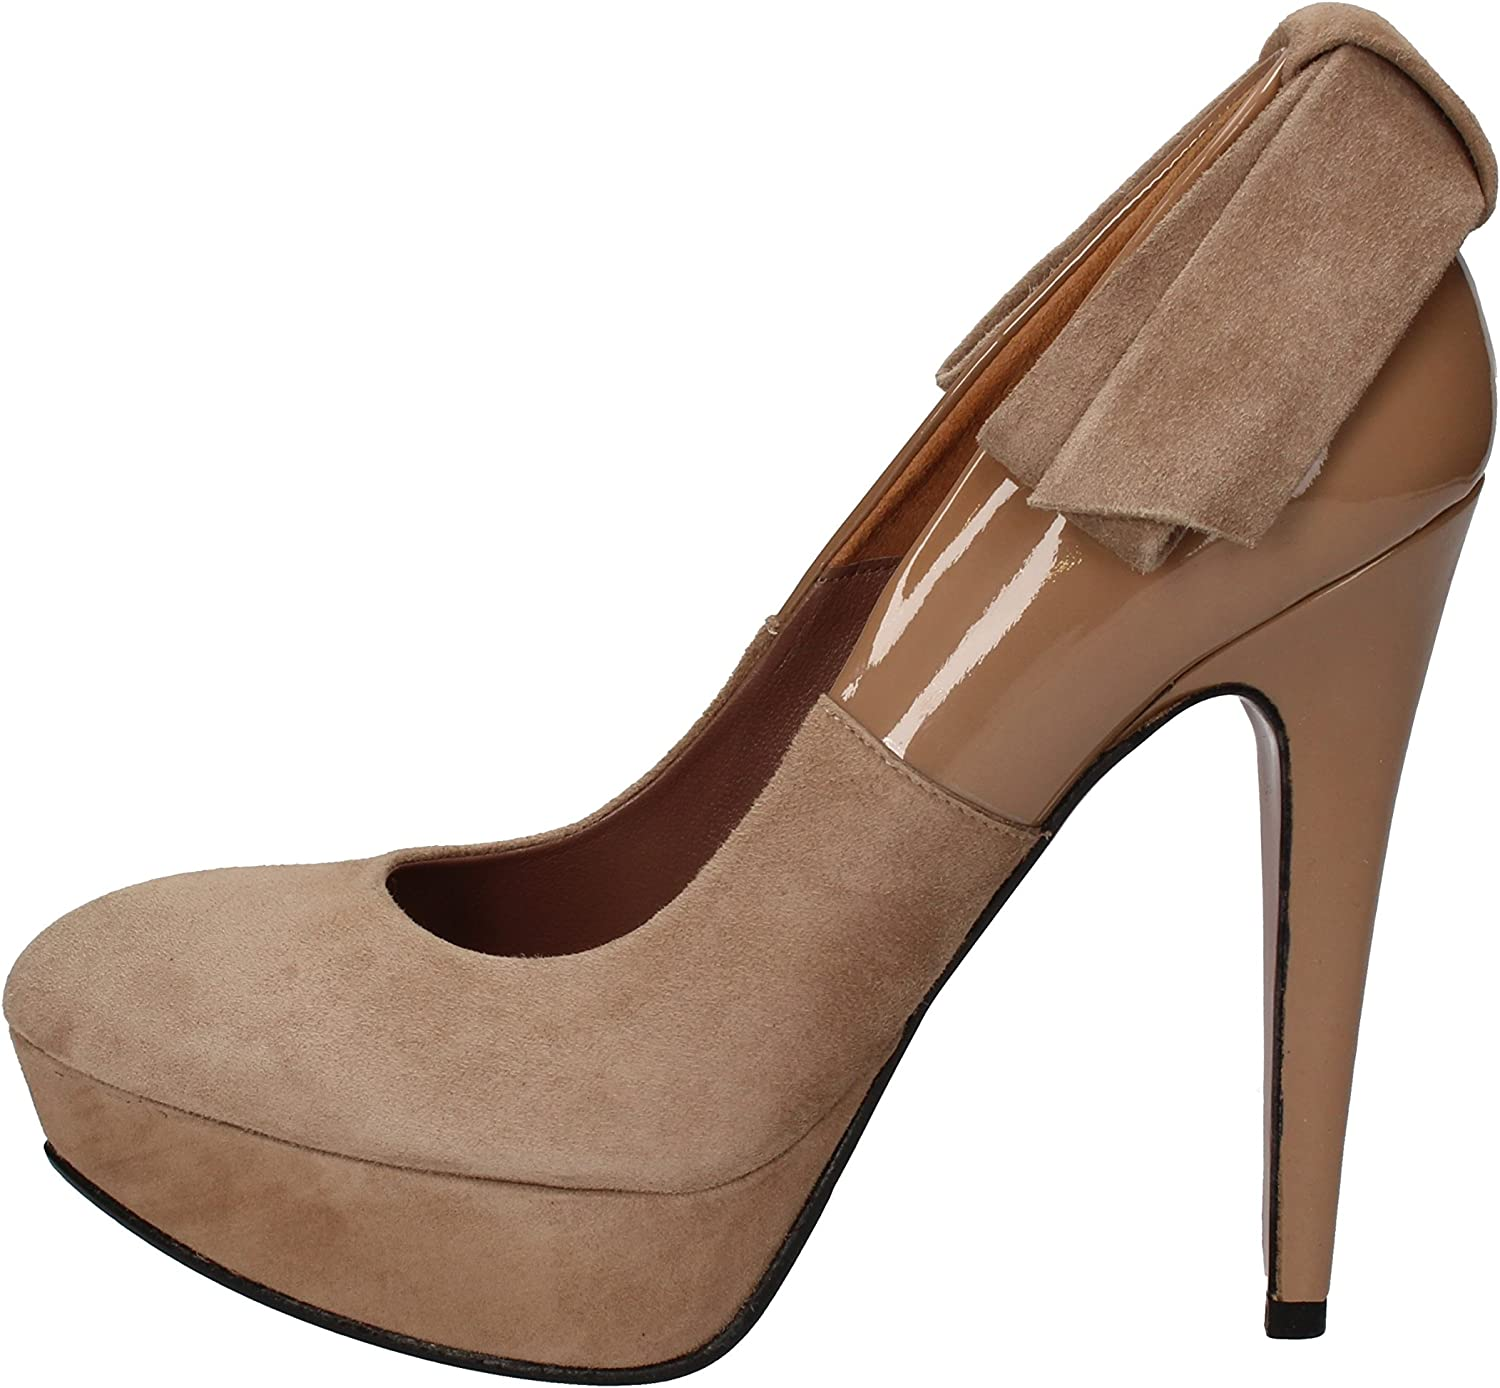 GIANNI MARRA Pumps-shoes Womens Suede Brown